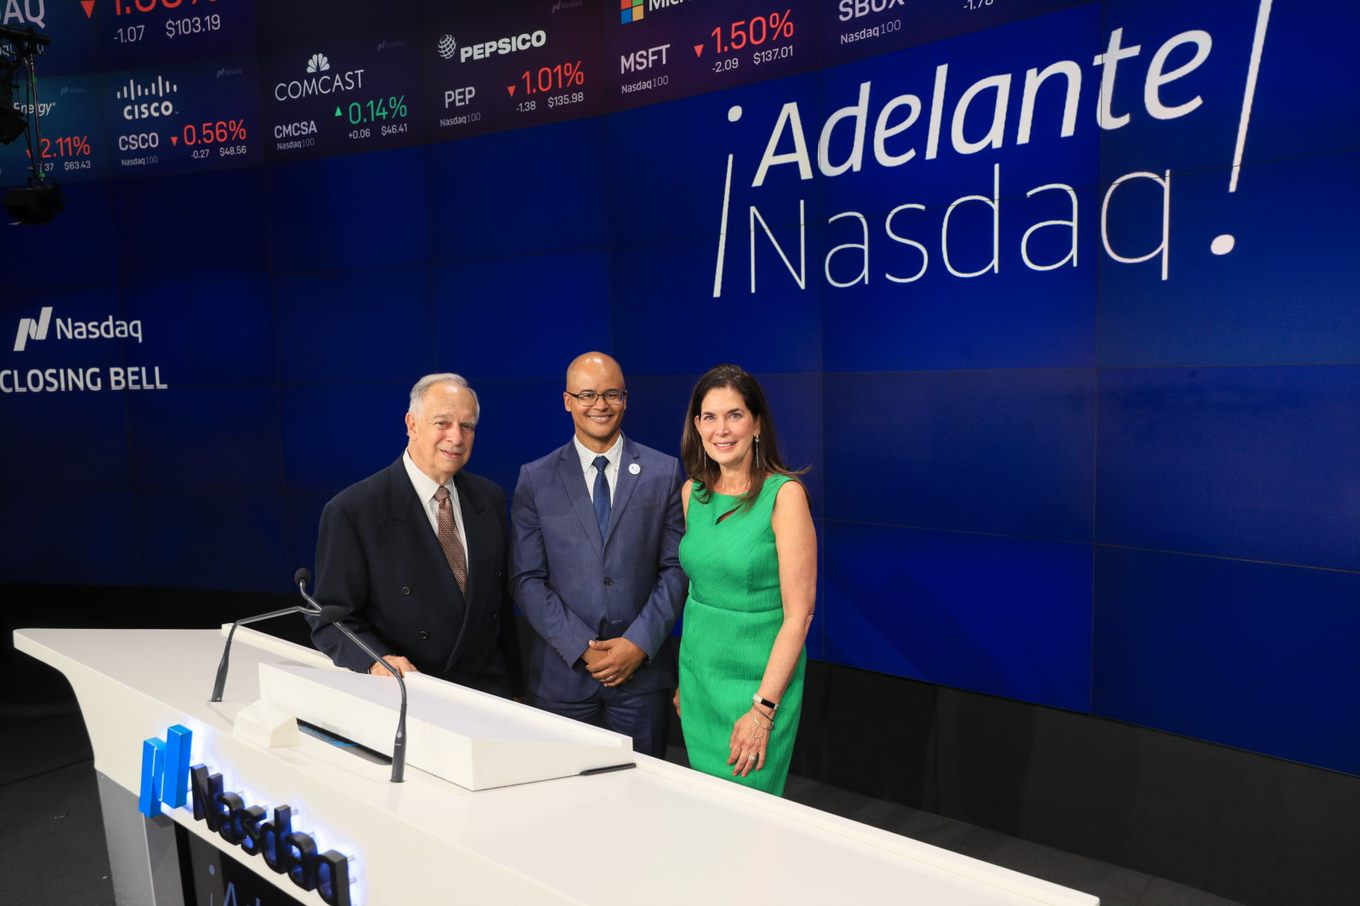 Ramon Peguero speaks on a panel hosted by Adelante Nasdaq